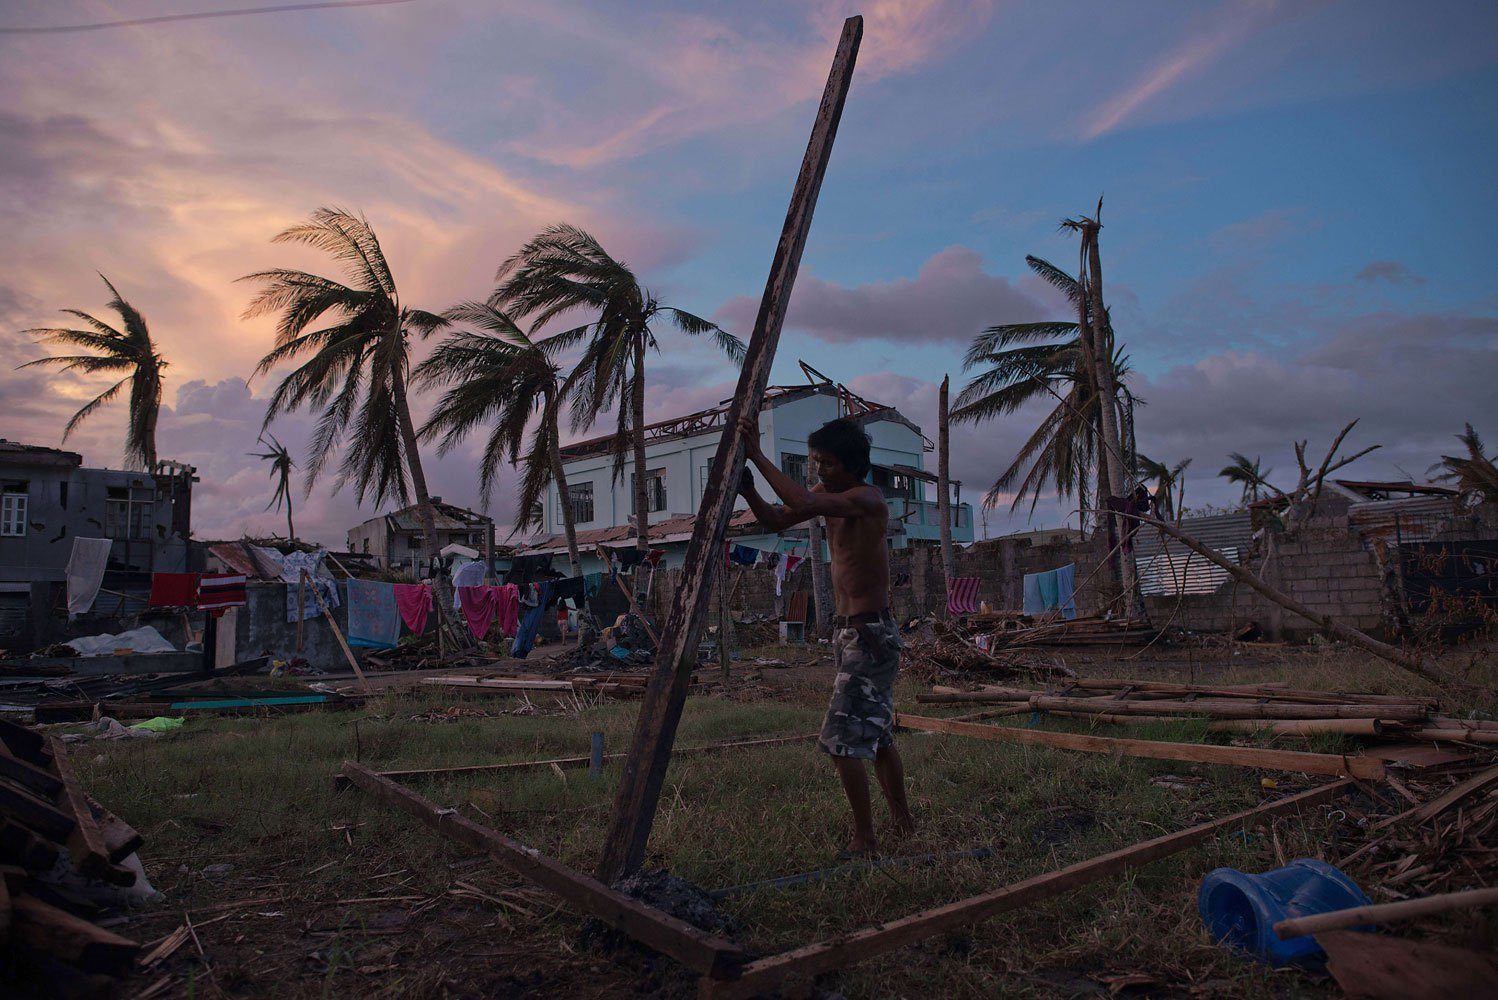 A typhoon victim constructs his new home in Tanauan on November 20, 2013.